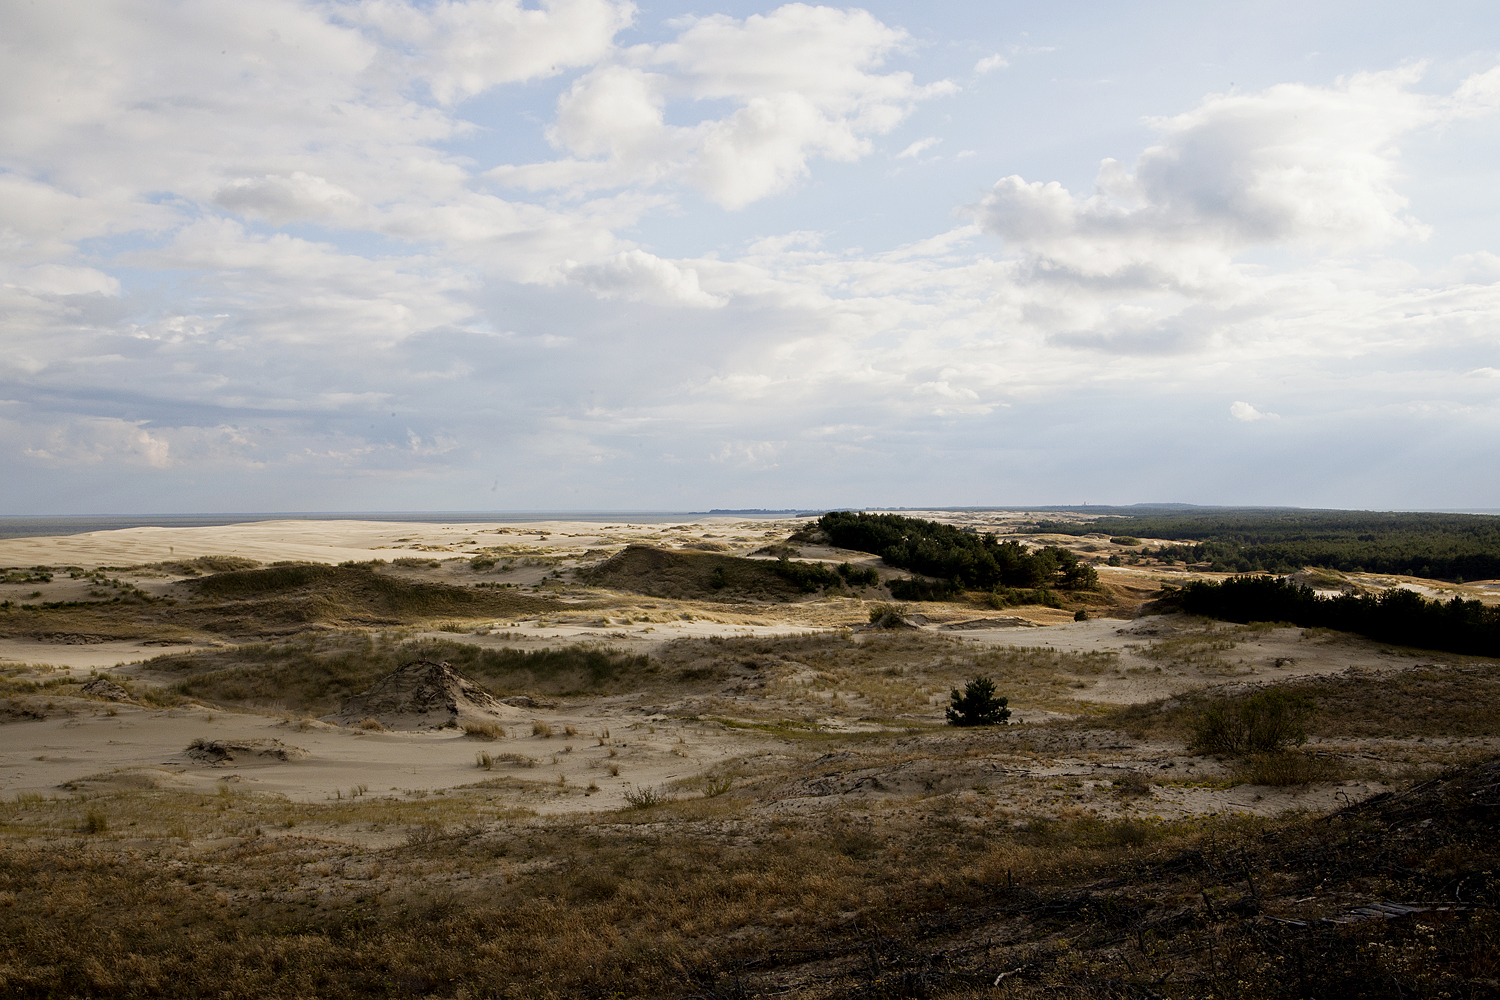 The Curonian Spit is a nearly 100-kilometer long curved sand-dune spit separating the Curonian Lagoon from the Baltic Sea Coast. It ranges in width from 400 meters at its narrowest point to 3,800 meters at its widest.